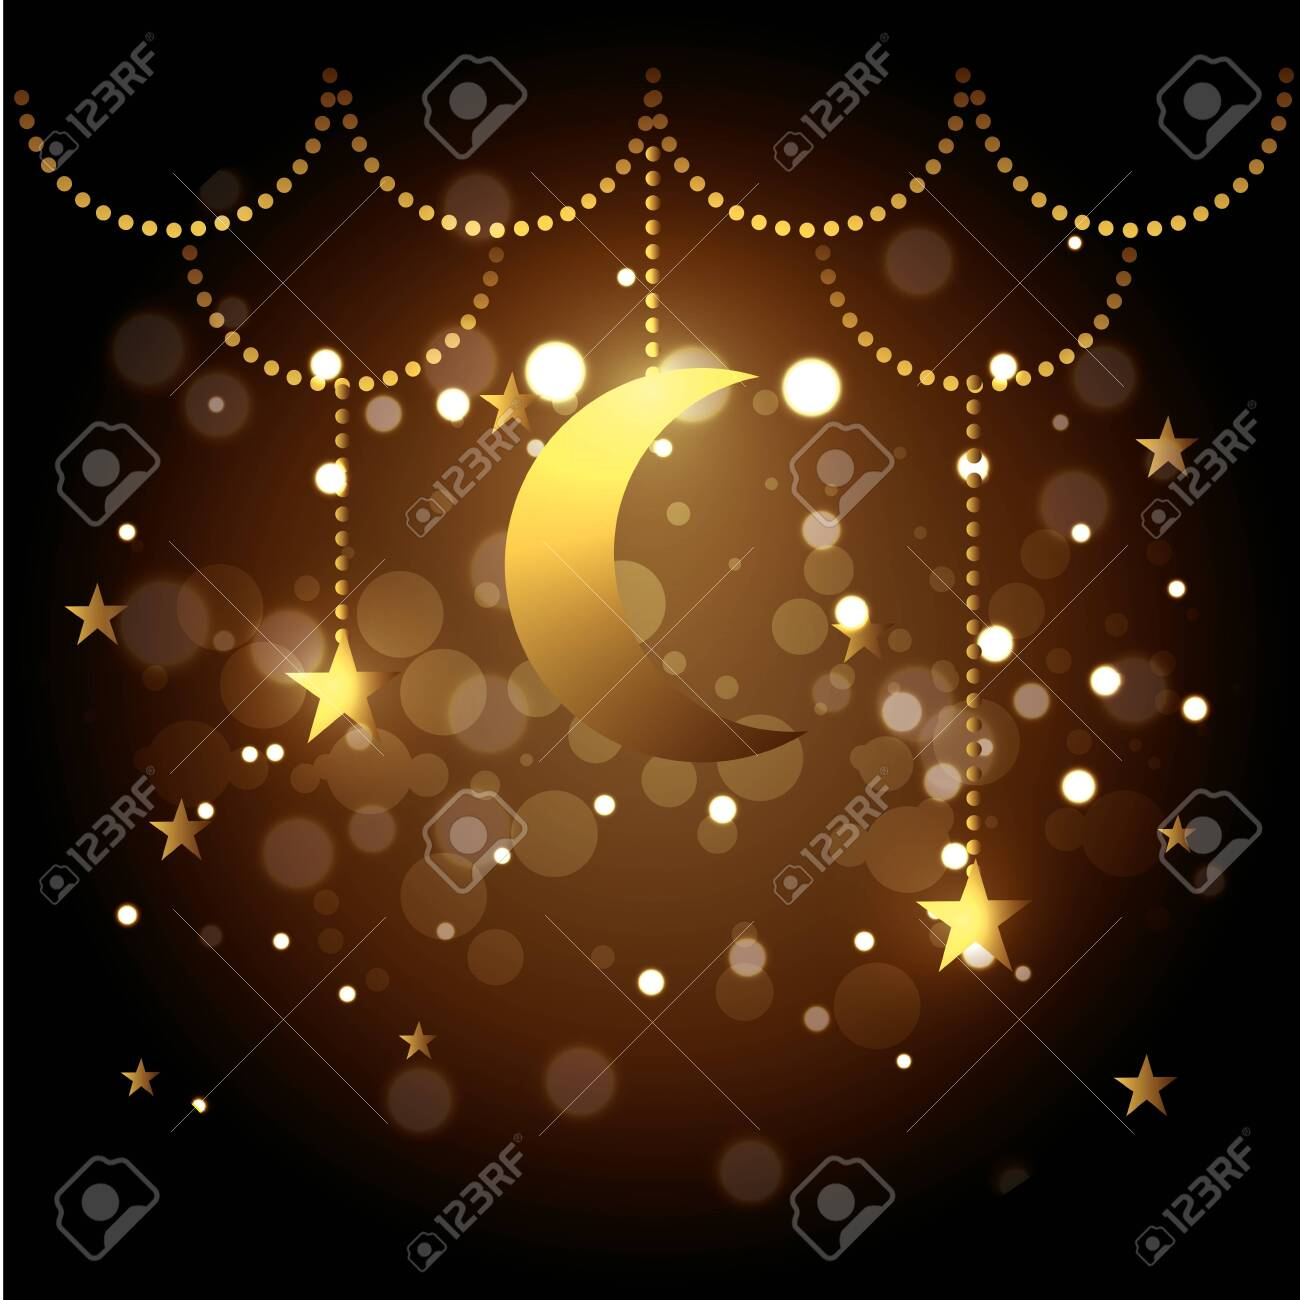 moon and stars hanging decoration to festival vector illustration - 129340971